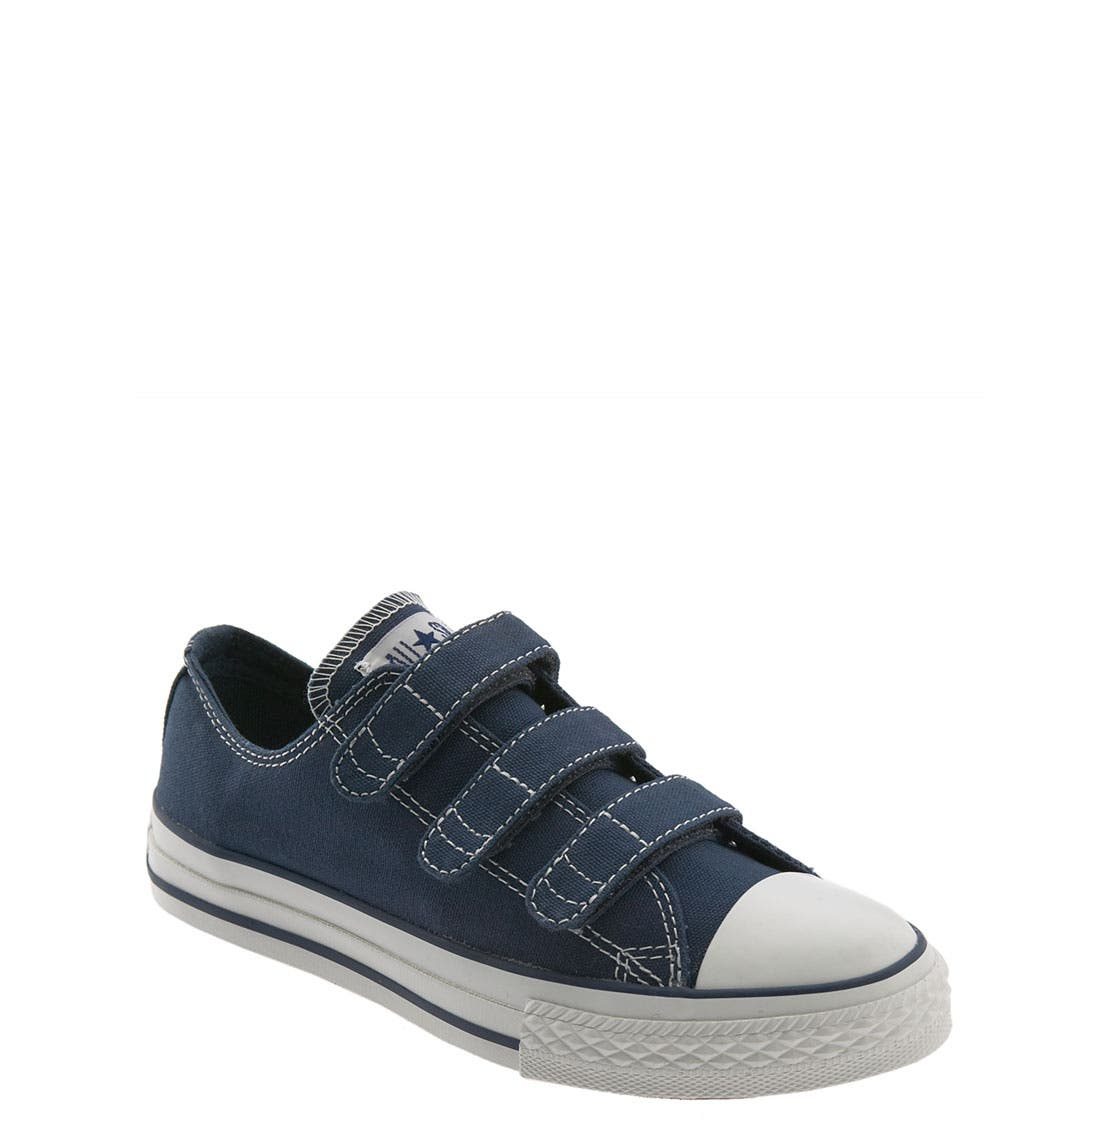 Alternate Image 1 Selected - Converse Chuck Taylor® Triple Strap Sneaker (Toddler & Little Kid)